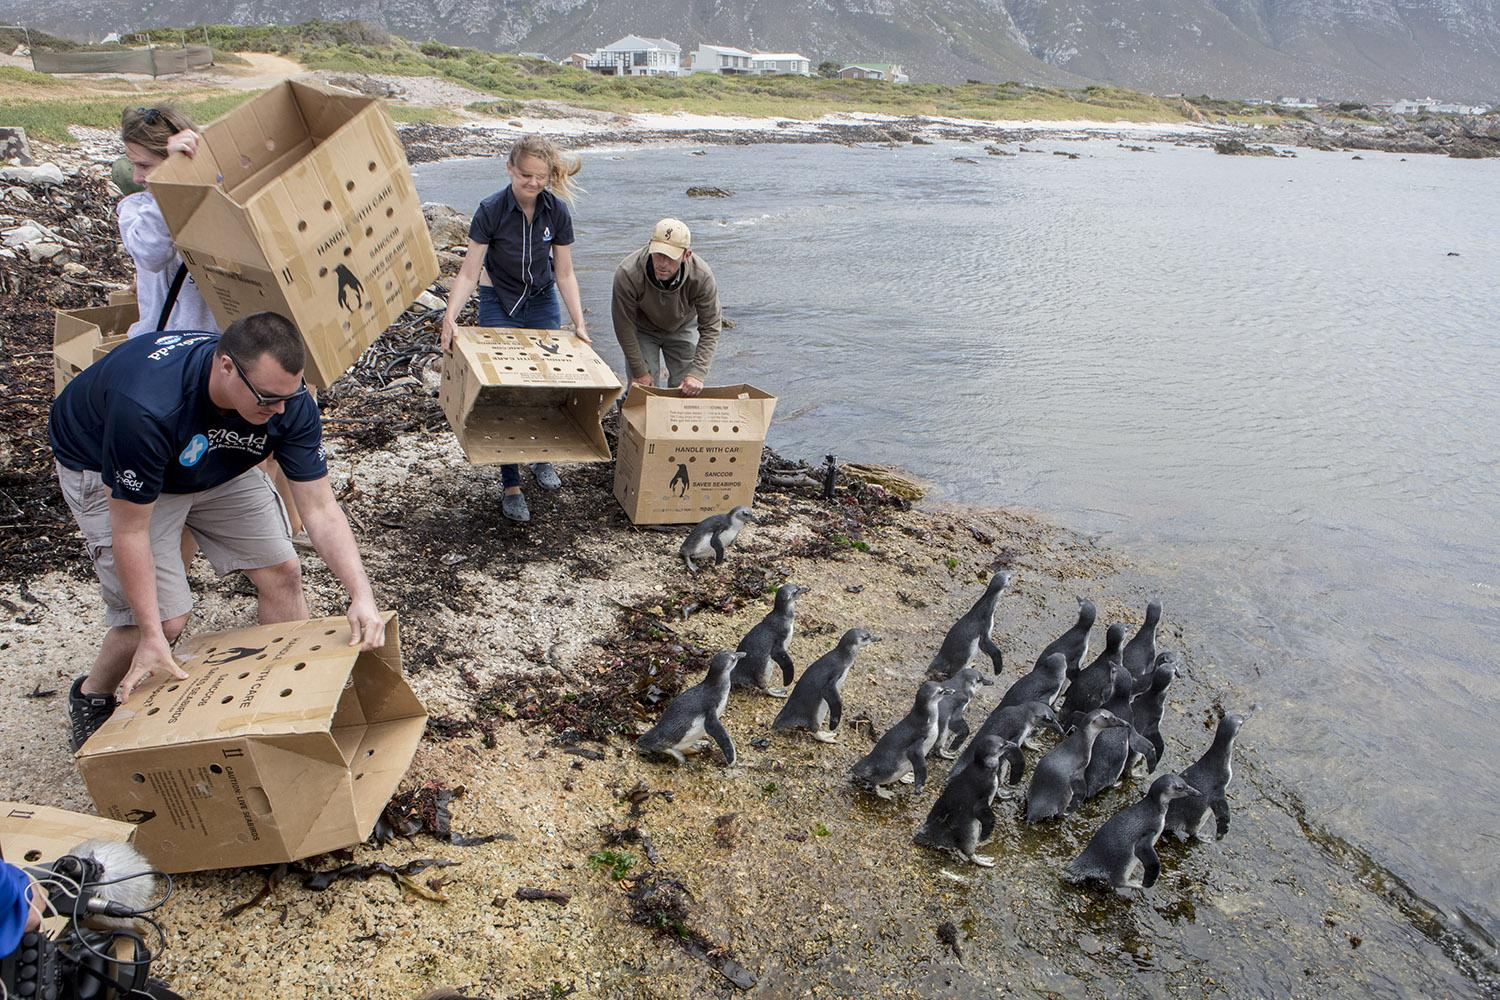 Kurt Heizmann of Shedd Aquarium's Animal Response Team releases penguin chicks back into the wild in South Africa. (Courtesy of Shedd Aquarium)